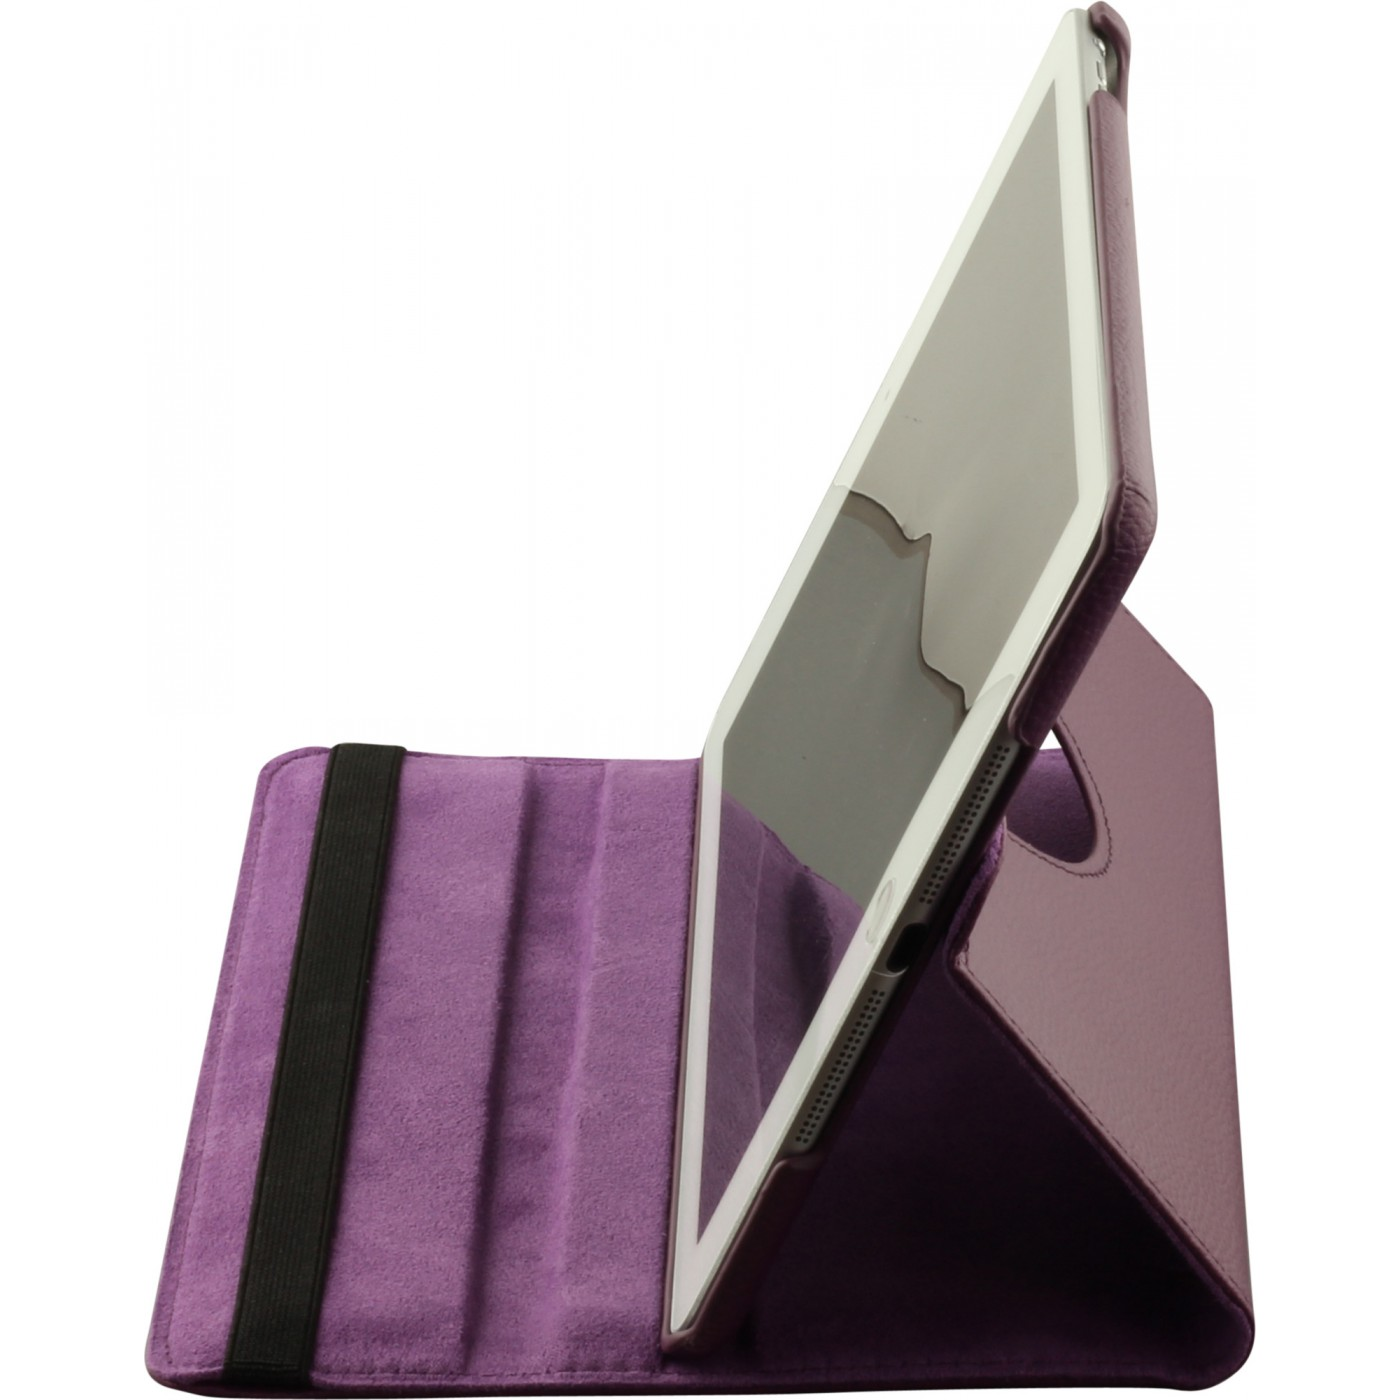 etui cuir ipad air 2 premium flip 360 violet. Black Bedroom Furniture Sets. Home Design Ideas